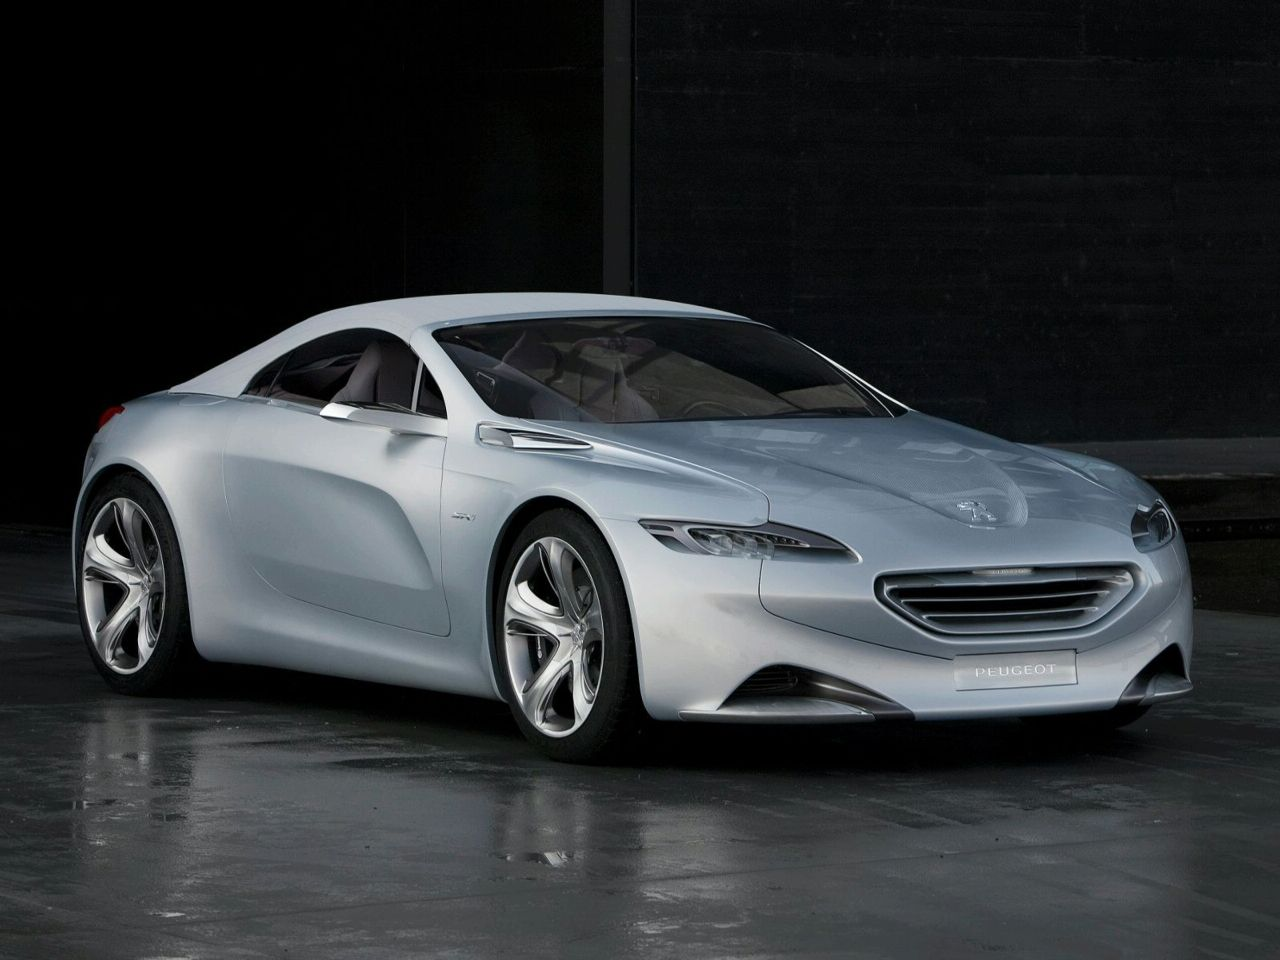 The 2010 Peugeot SR1 Concept Car